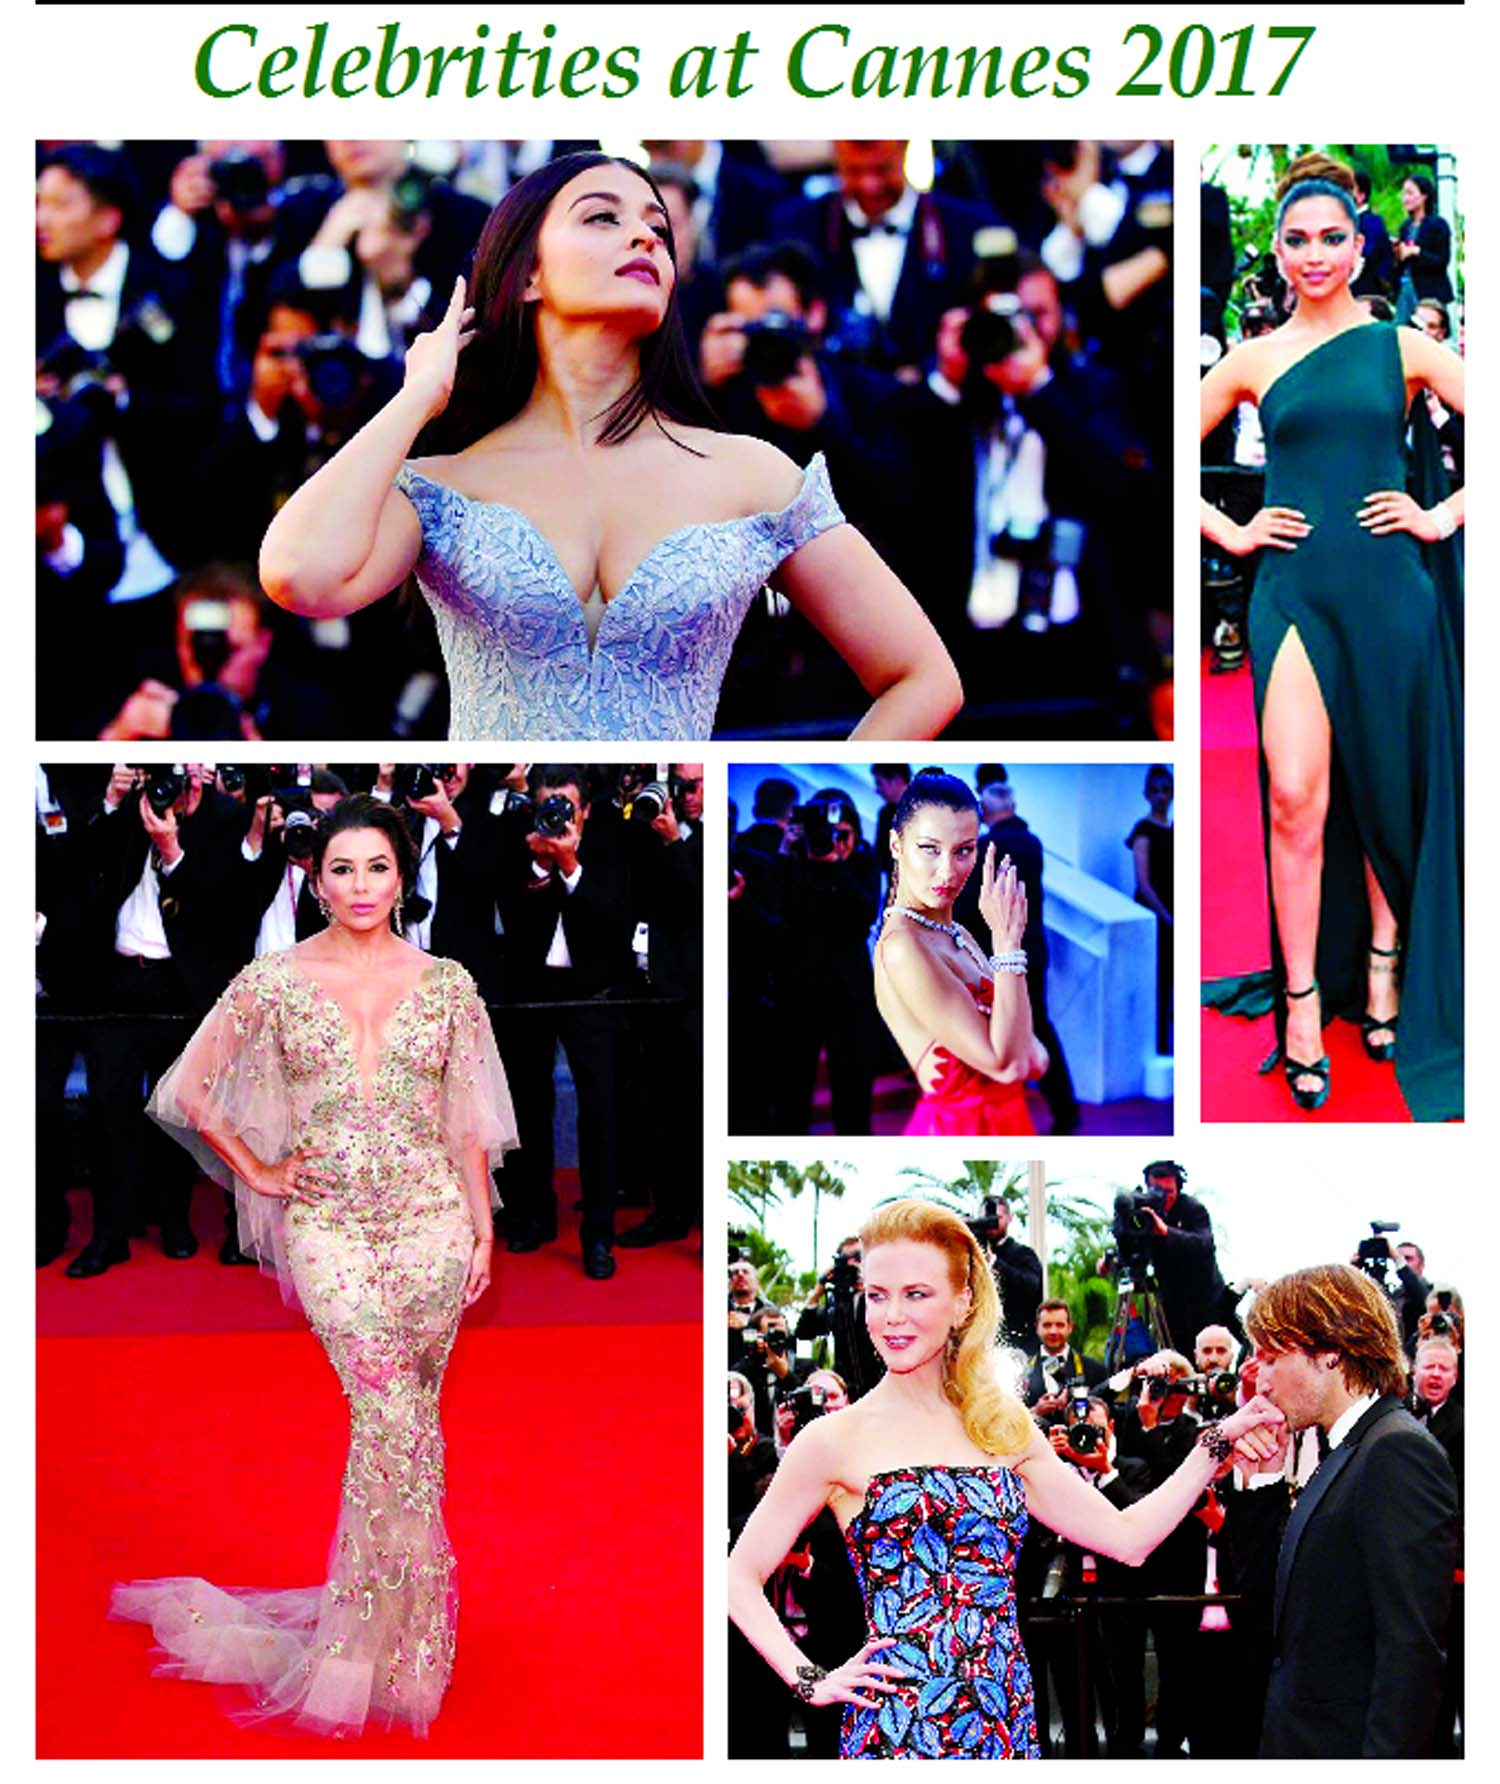 Celebrities at Cannes 2017